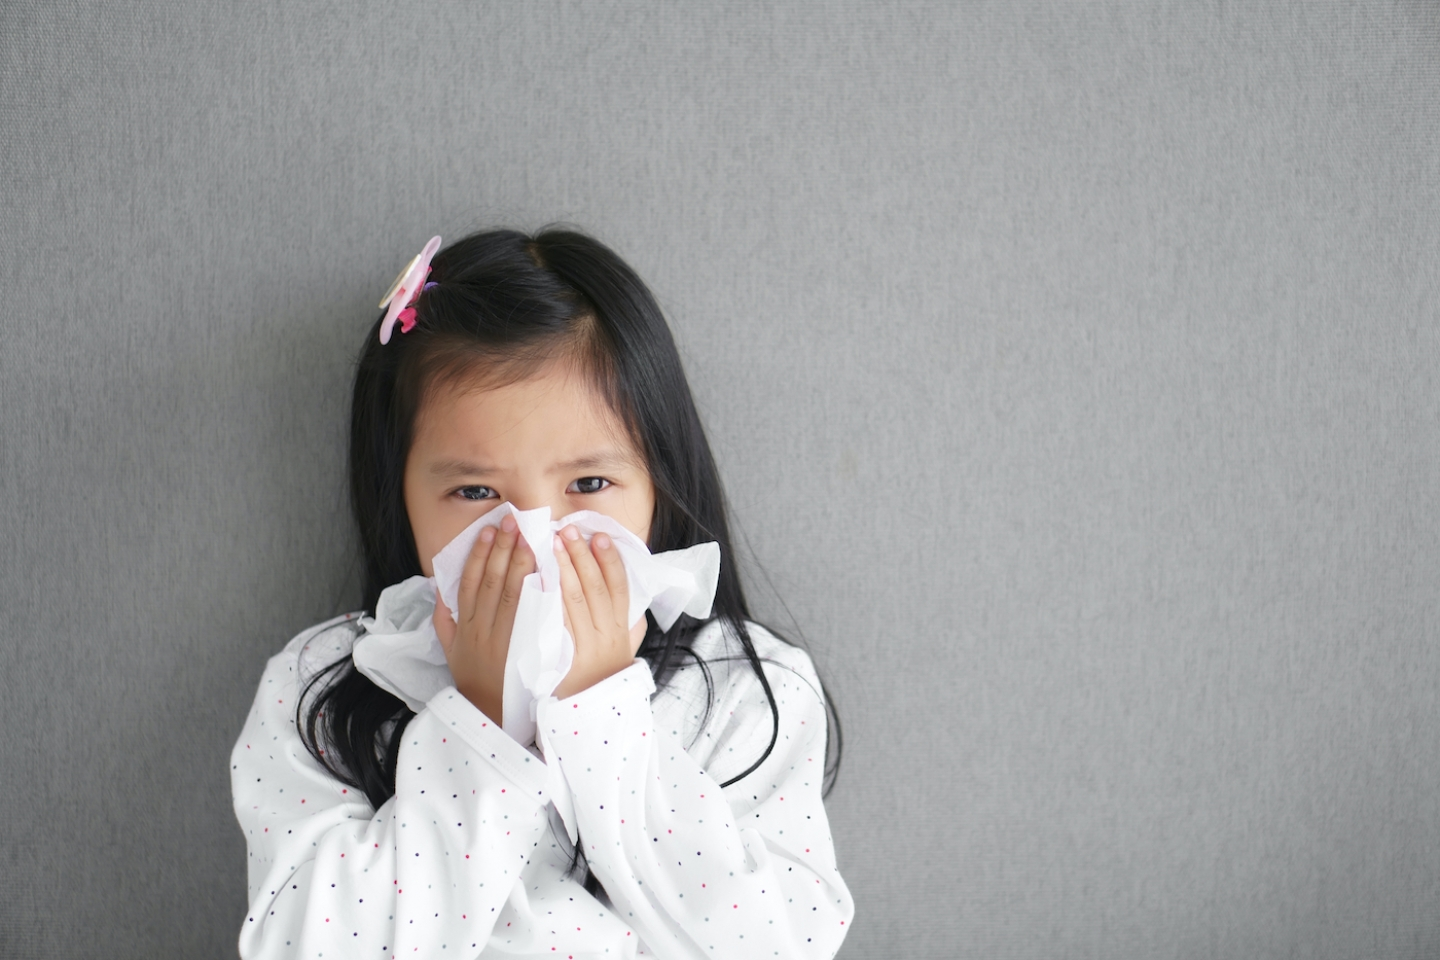 young girl sneezing into a tissue